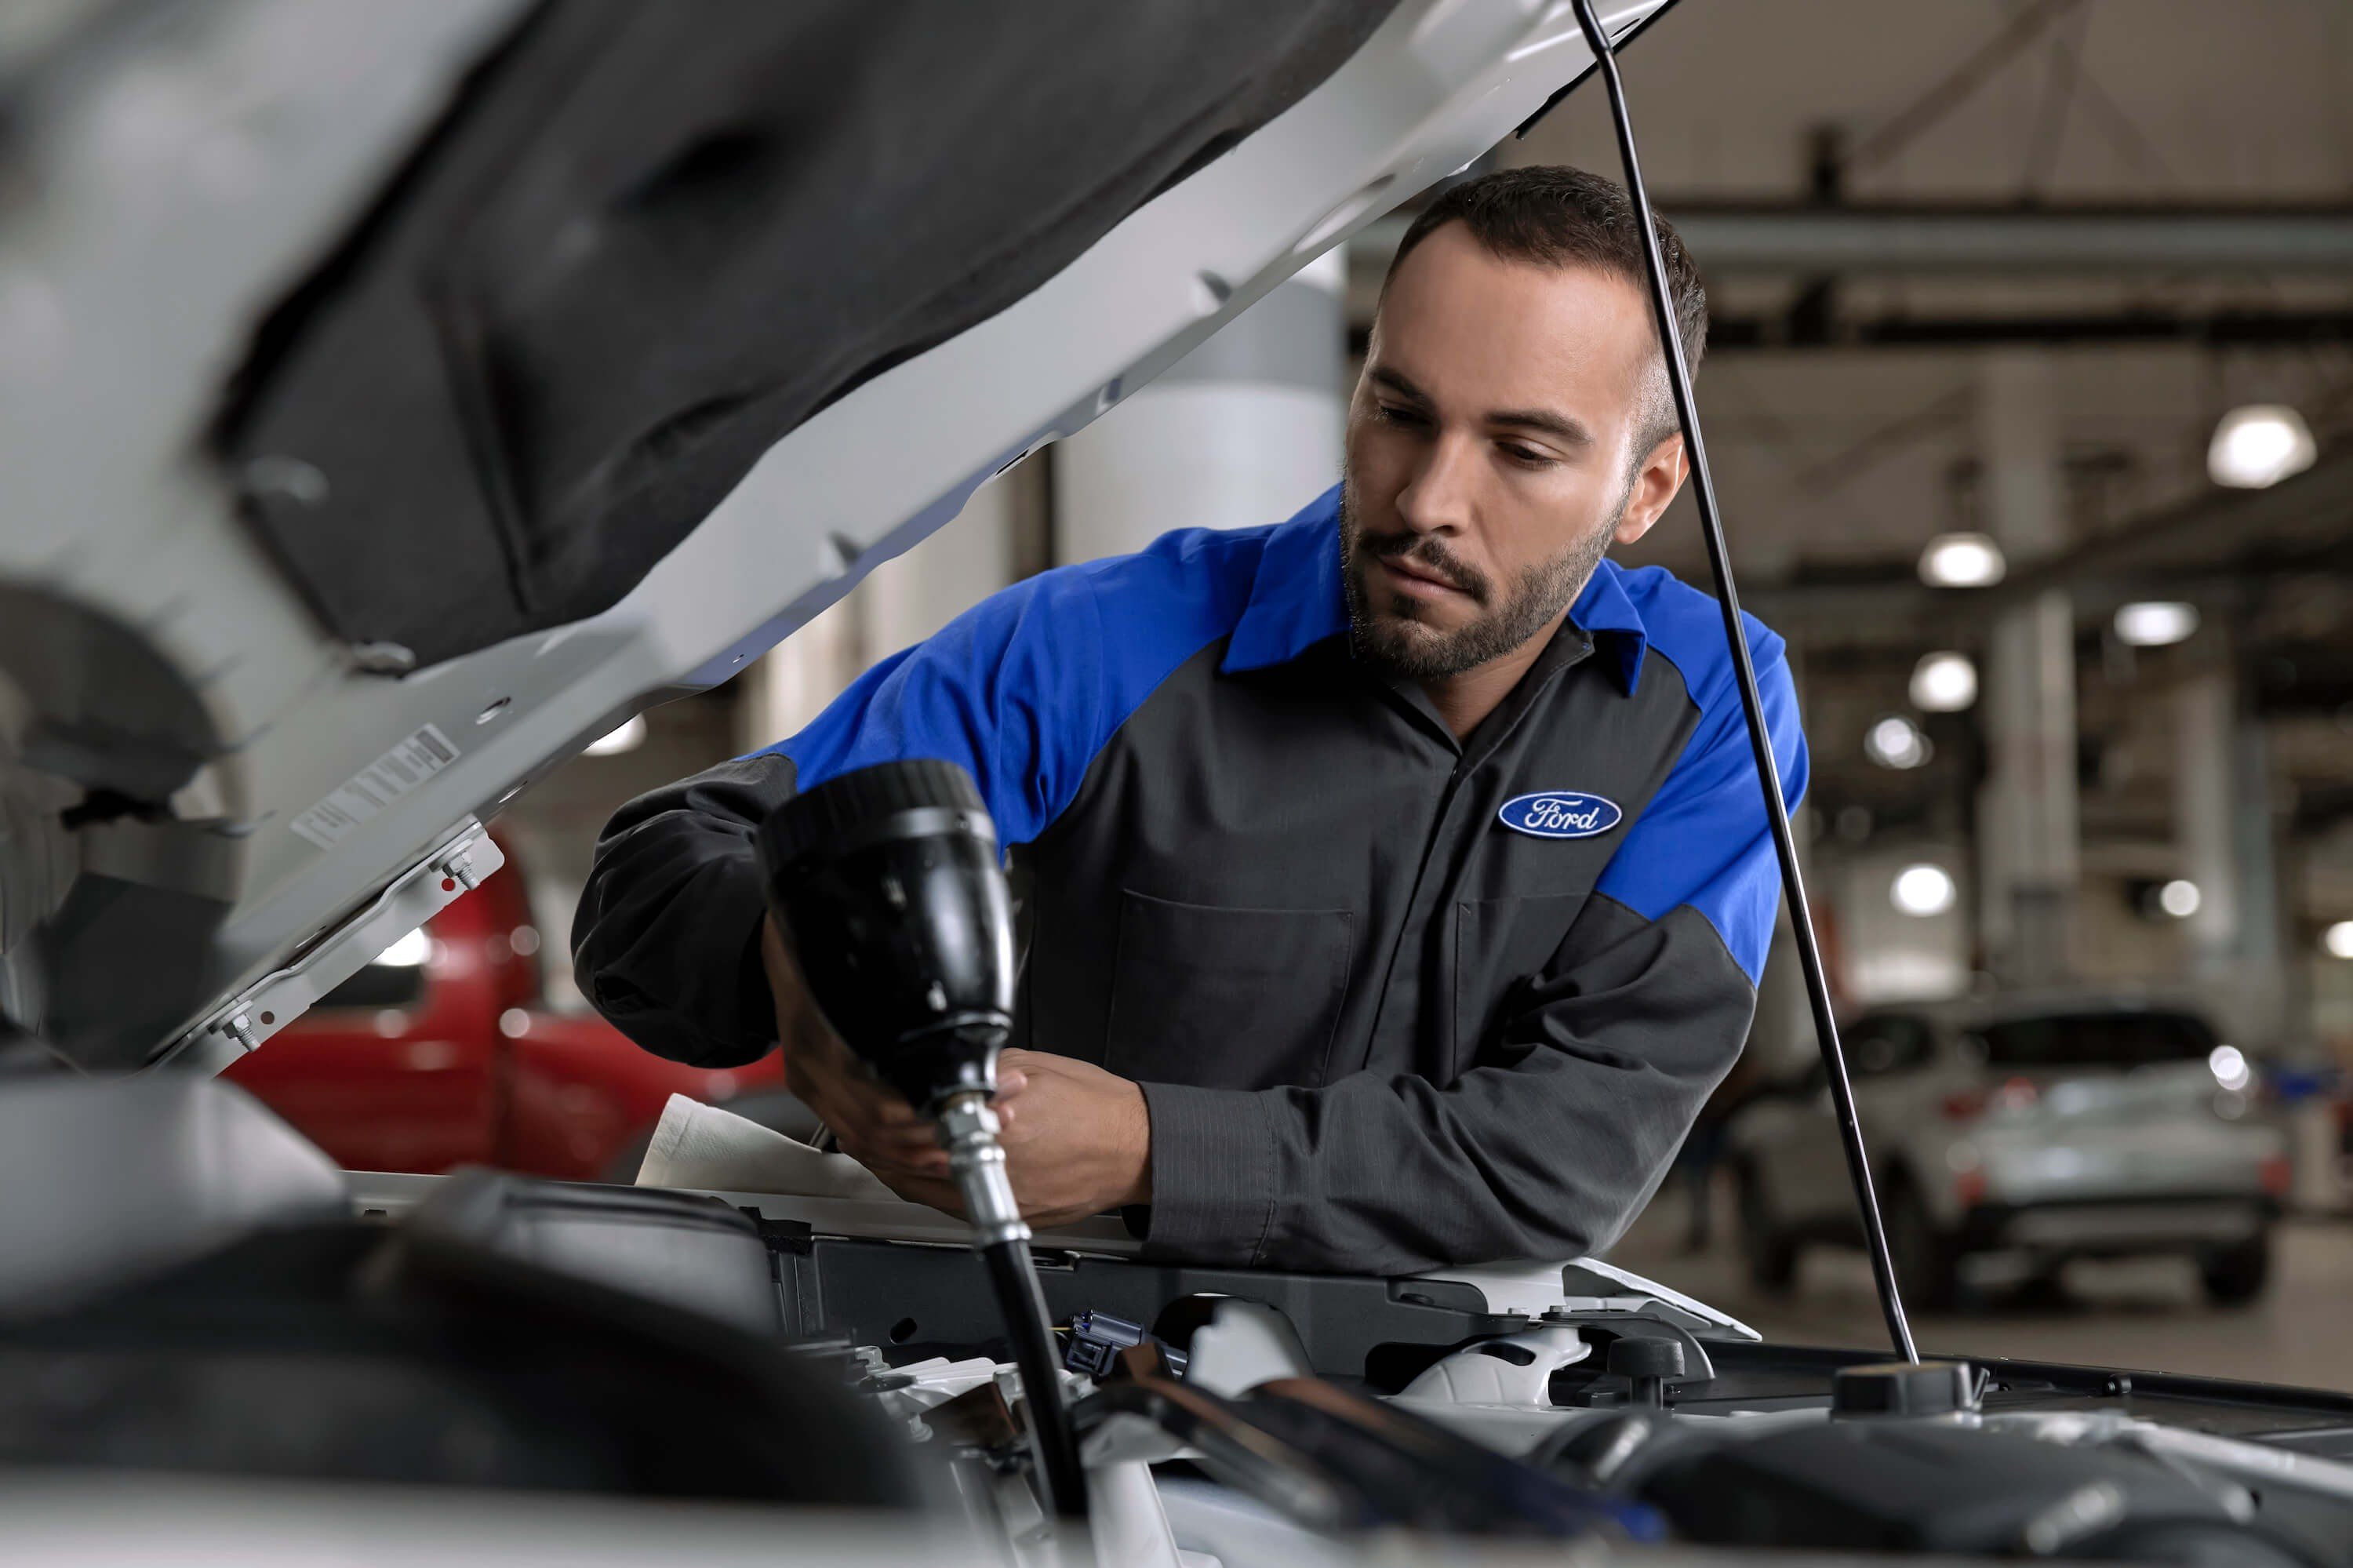 Mullinax Ford - Service Technician Changing Oil